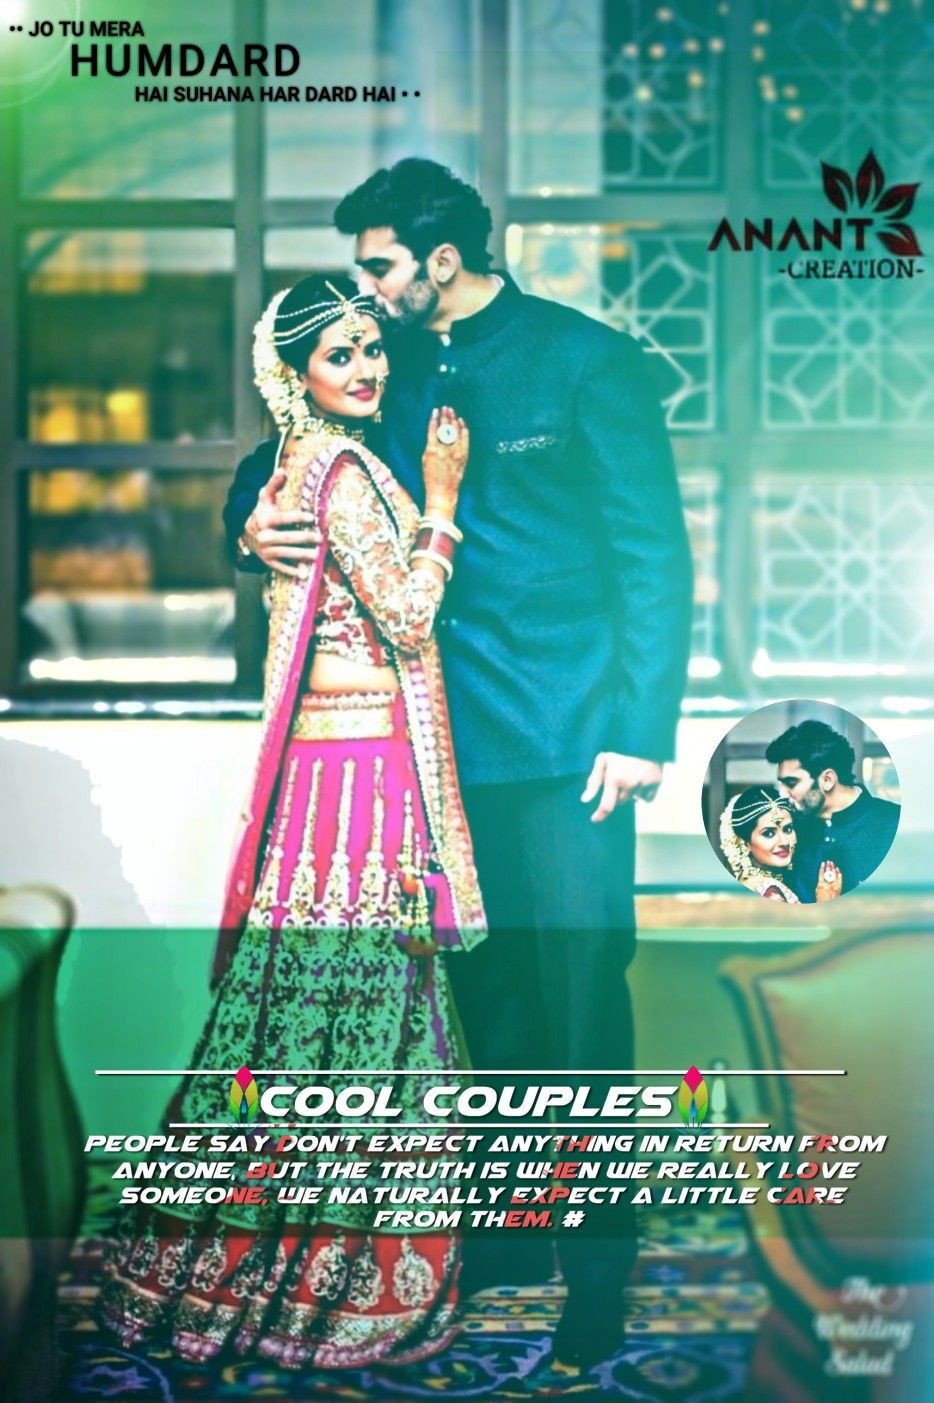 Pin by Anant Chouhan on Awesome Dpz   Fun couple, Editing